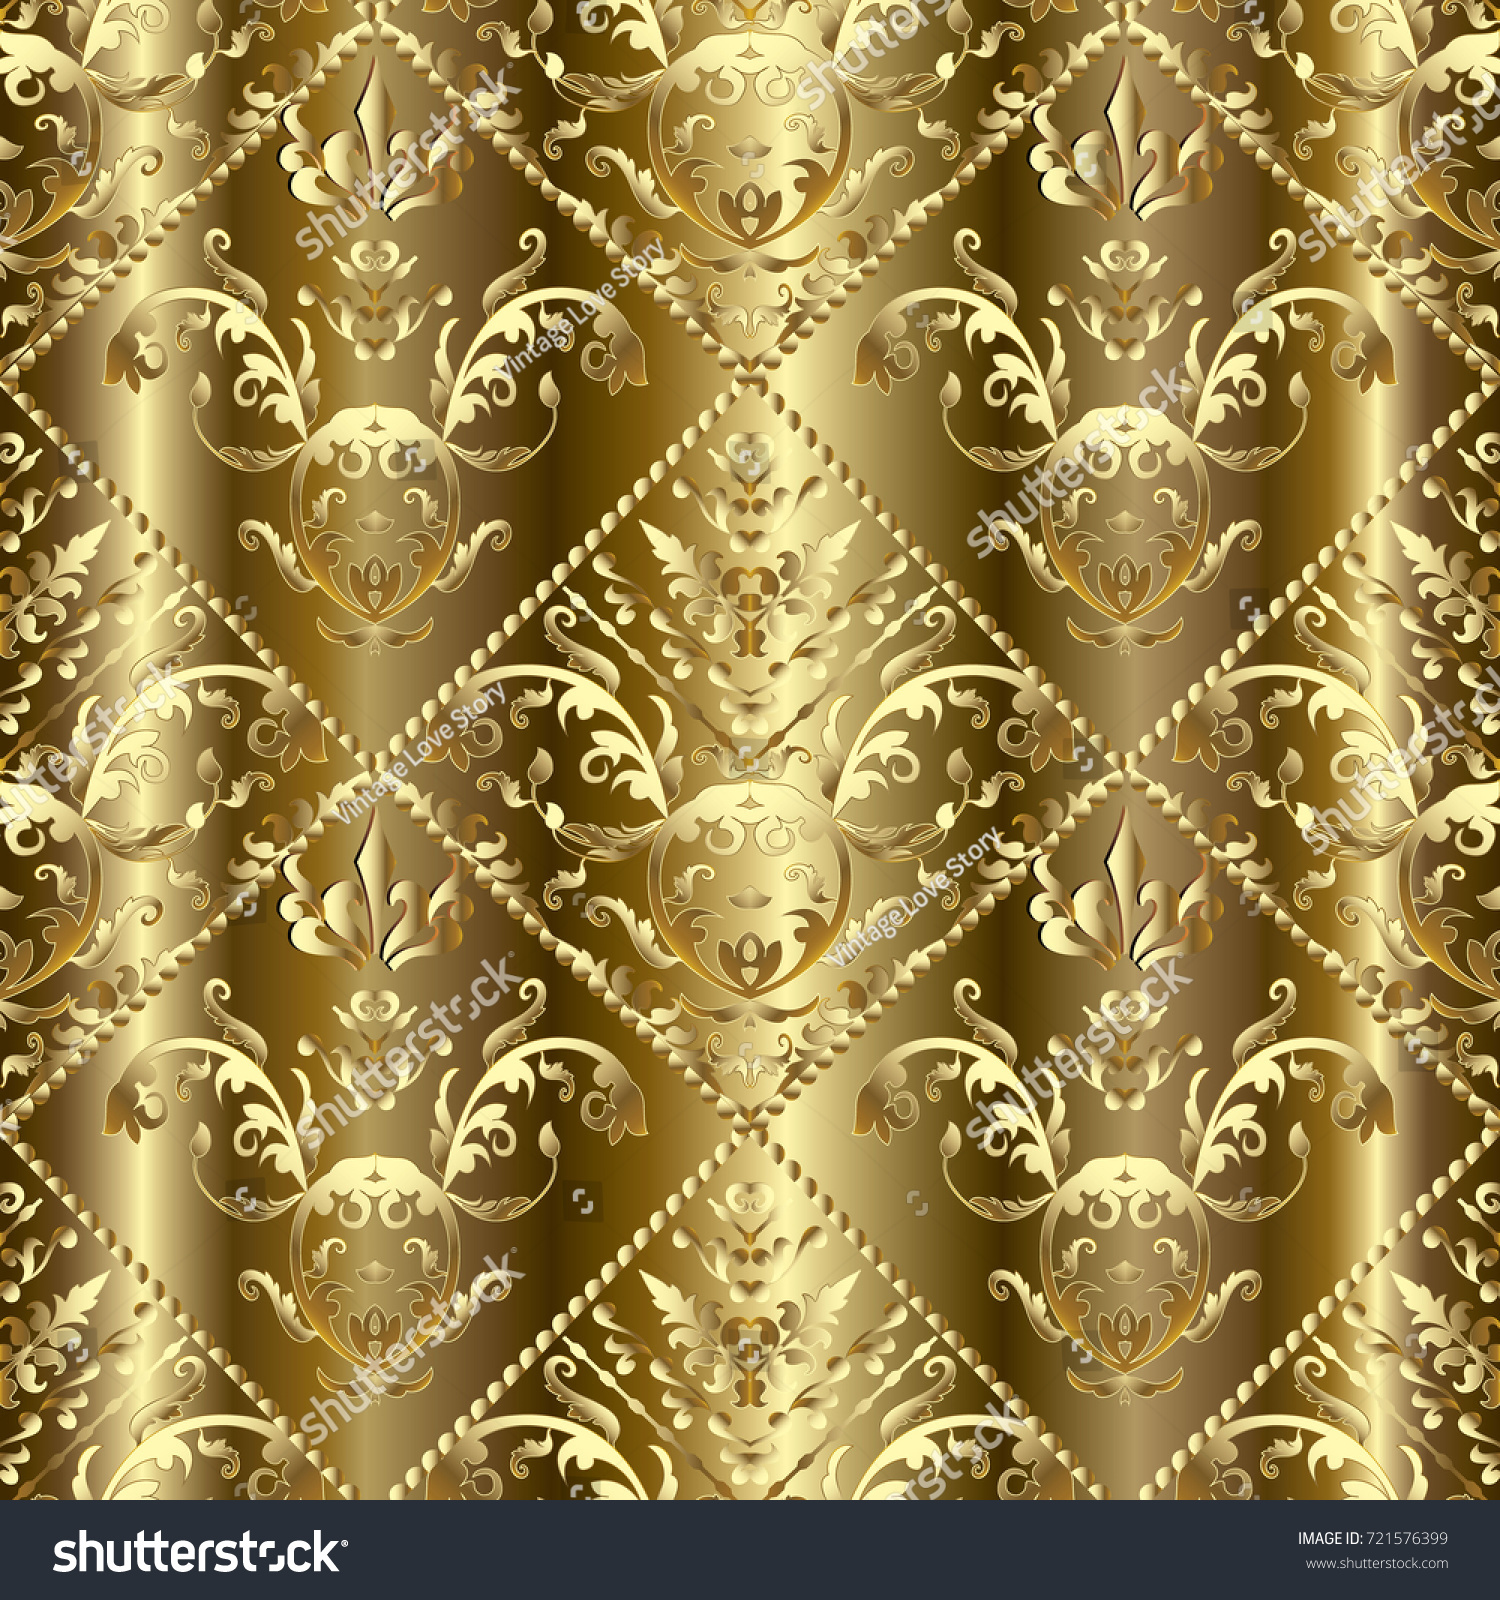 Gold Baroque 3 D Seamless Pattern Floral Stock Vector 721576399 ...